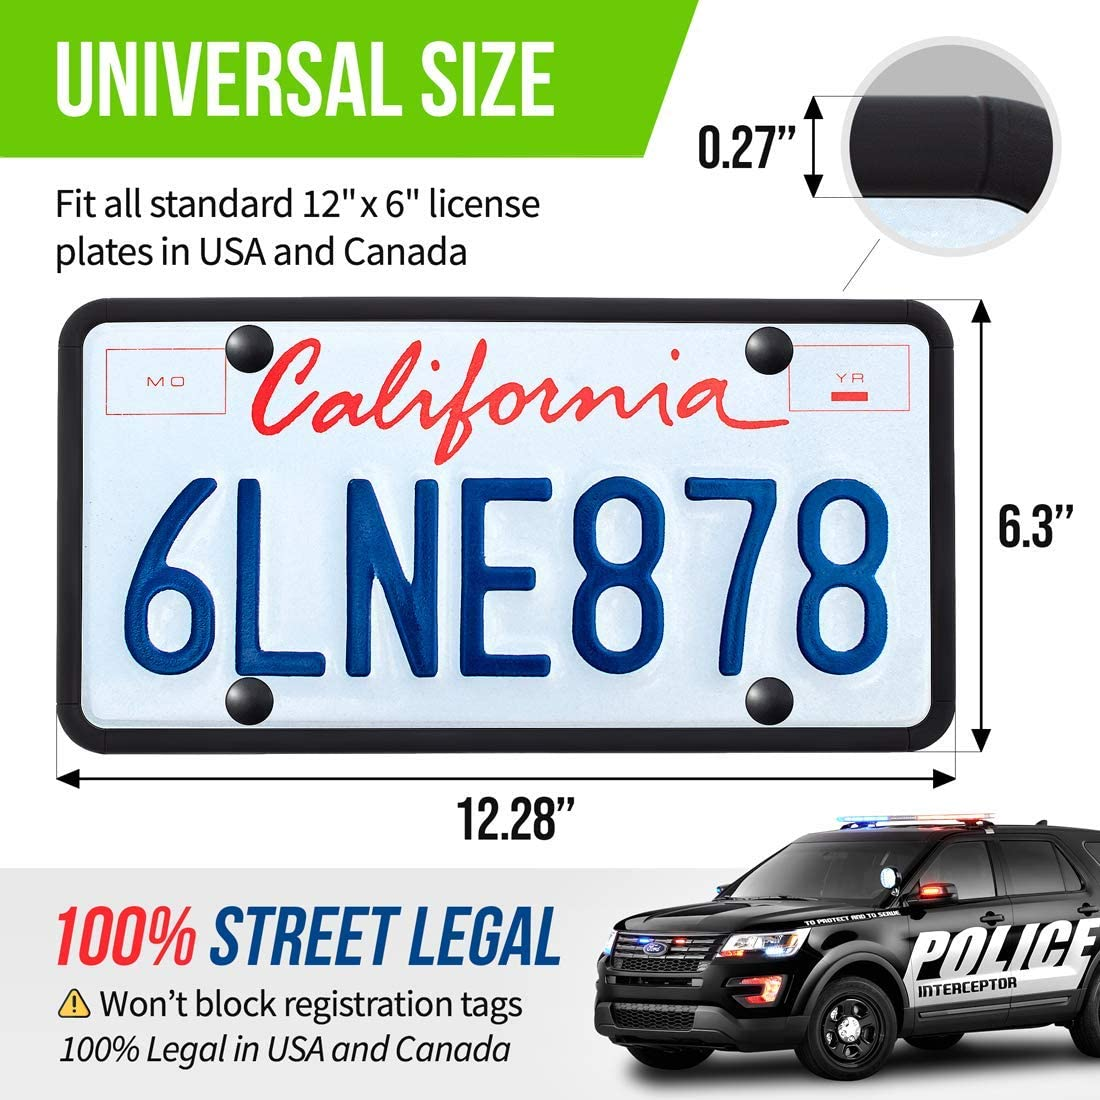 Rust-Proof GERCHWAY Silicone License Plate Frame Black Rattle-Proof Universal American Car License Plate Holder with Screws and Covers